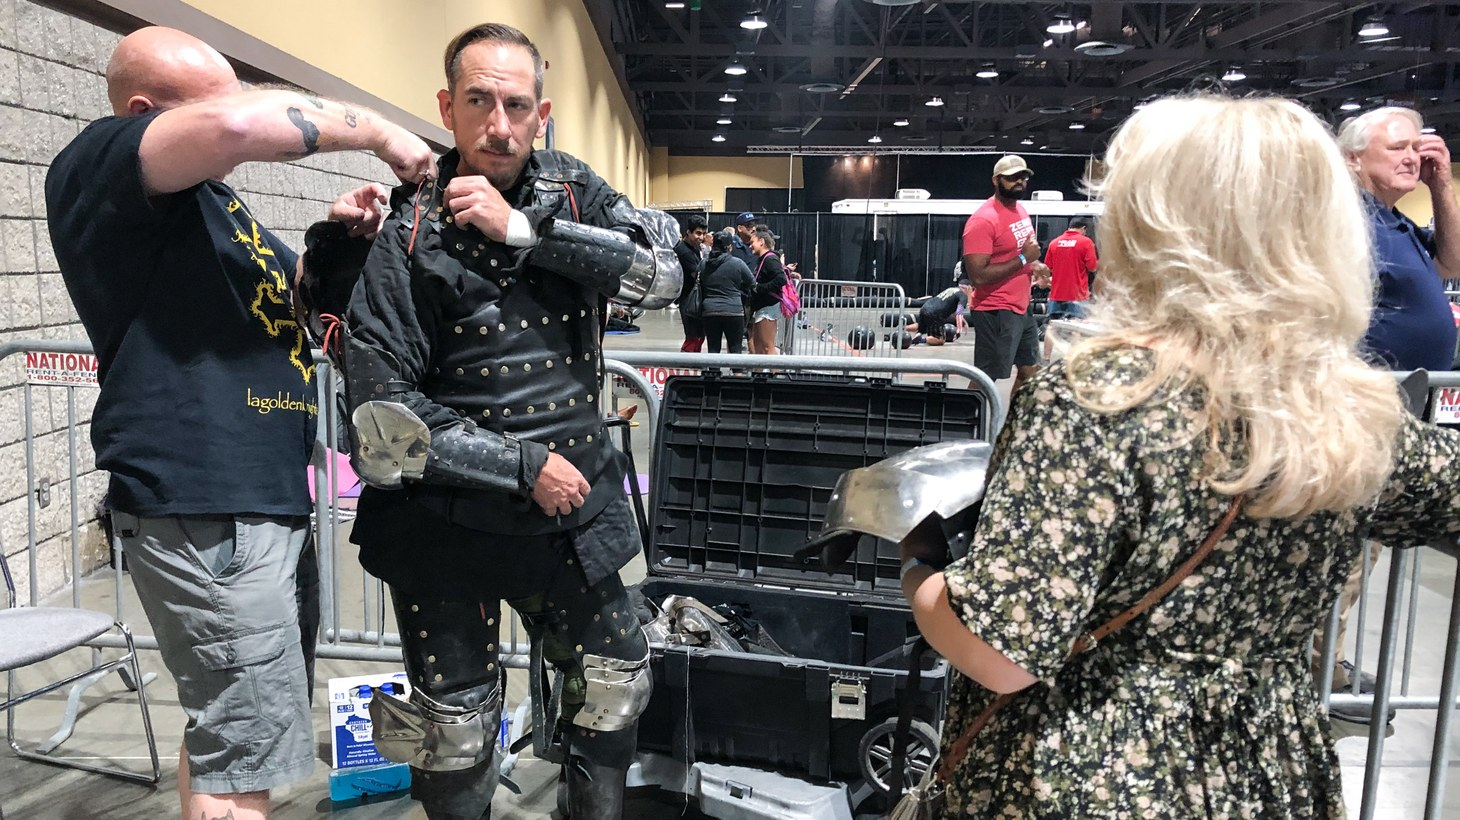 Brian Shirloff helps Marcus Kelley put on his armor before an afternoon of knight battles at the Long Beach Convention Center.